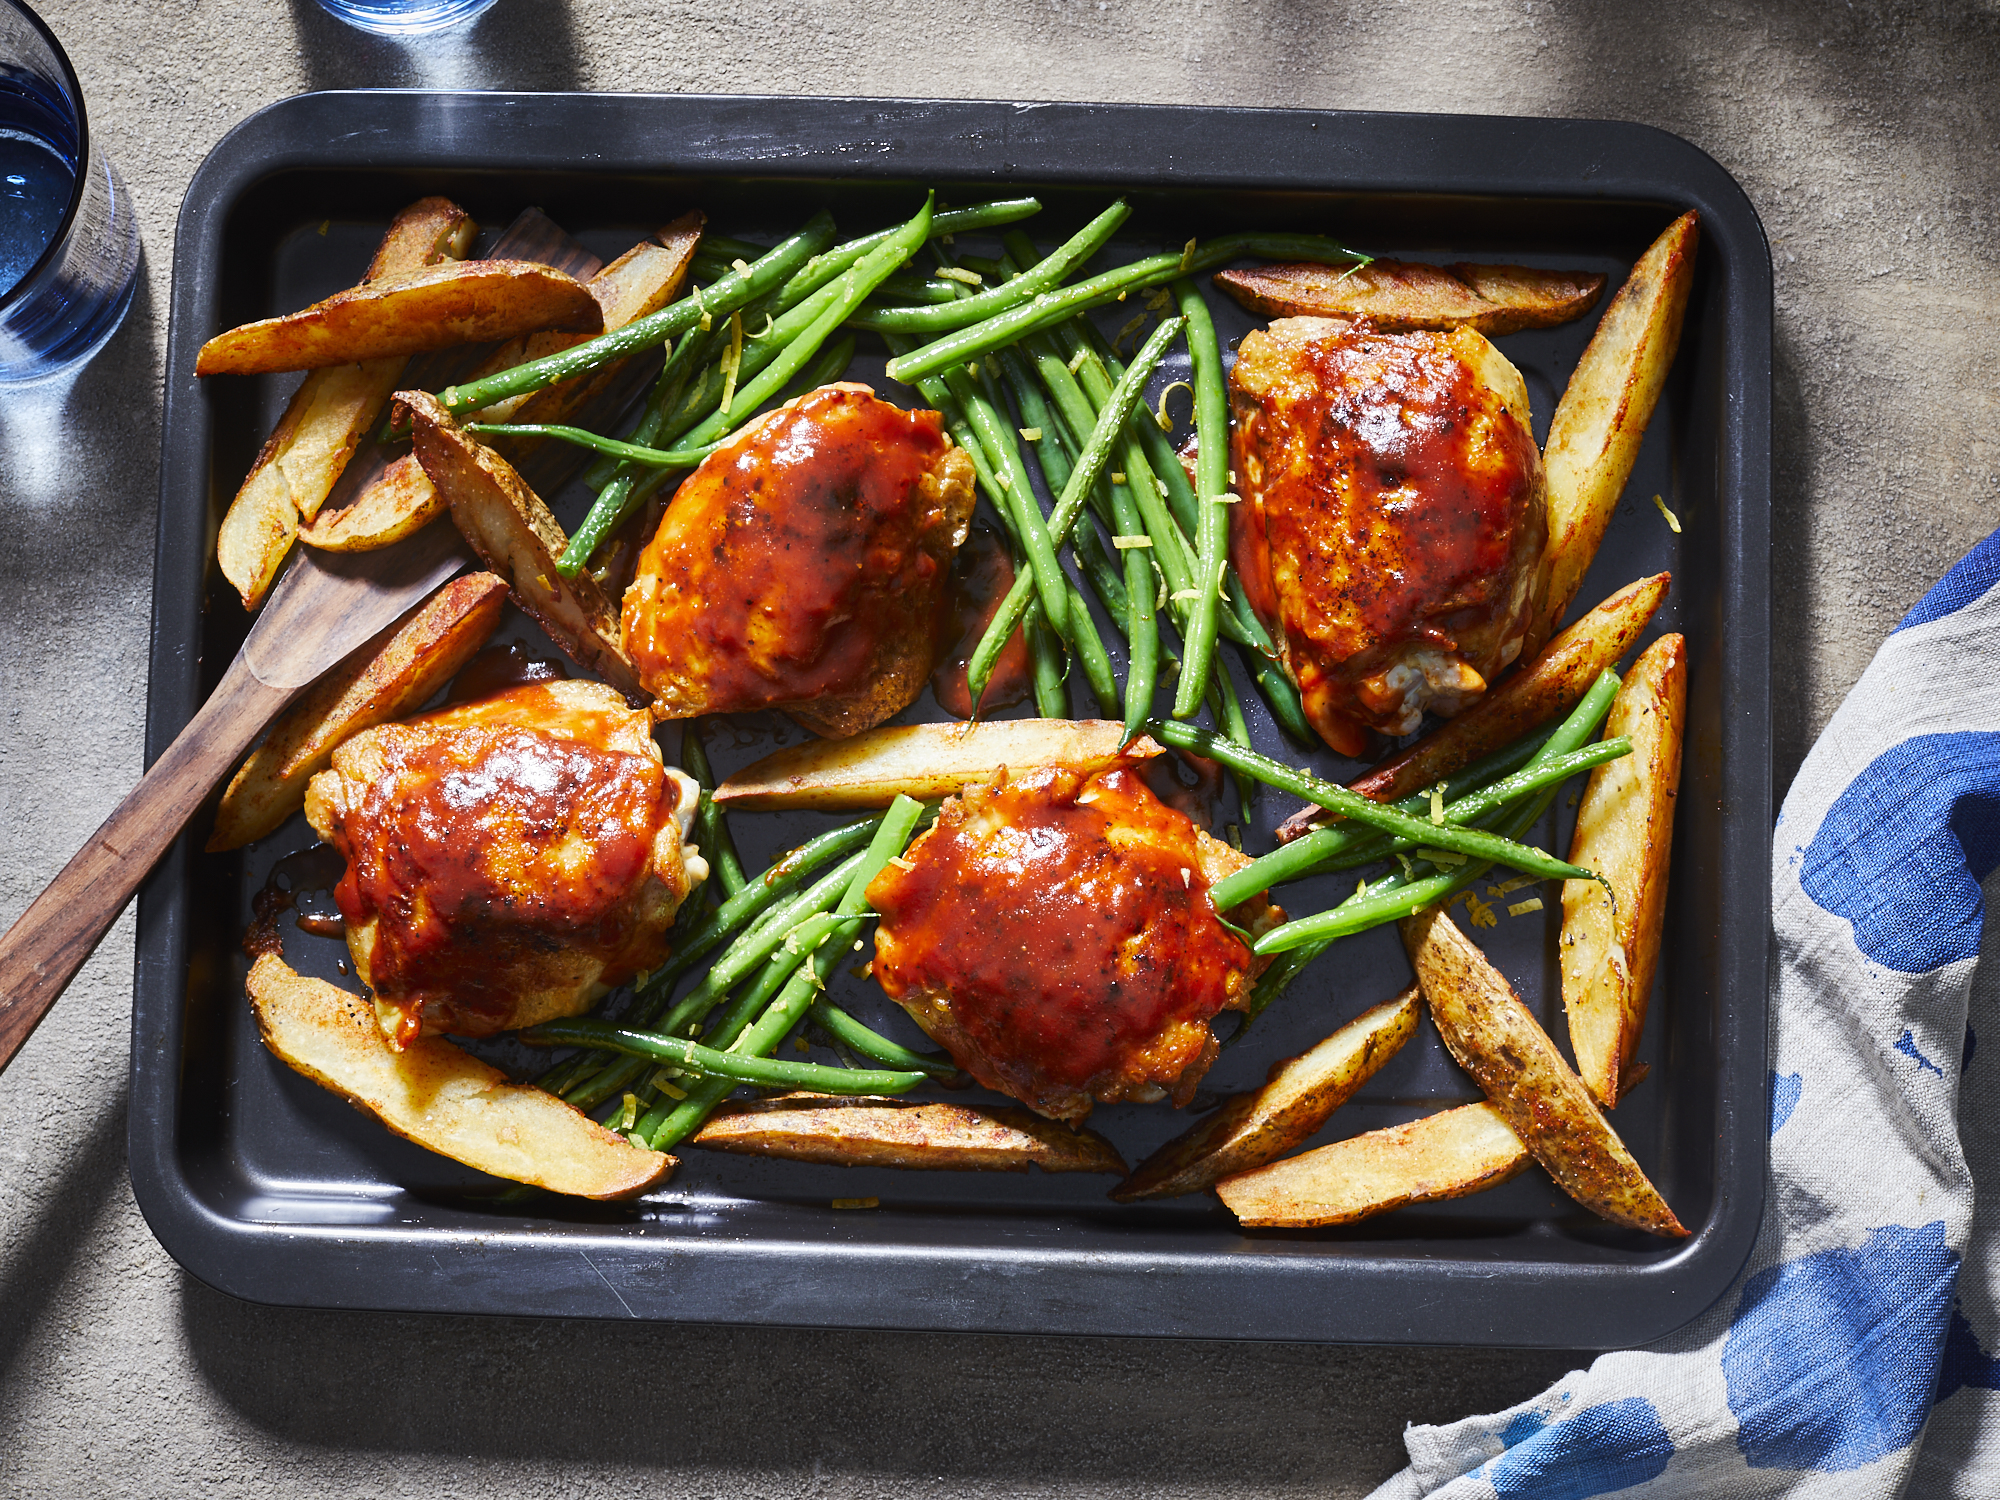 mr-Sheet Pan BBQ Chicken Thighs with Green Beans and Potatoes Image